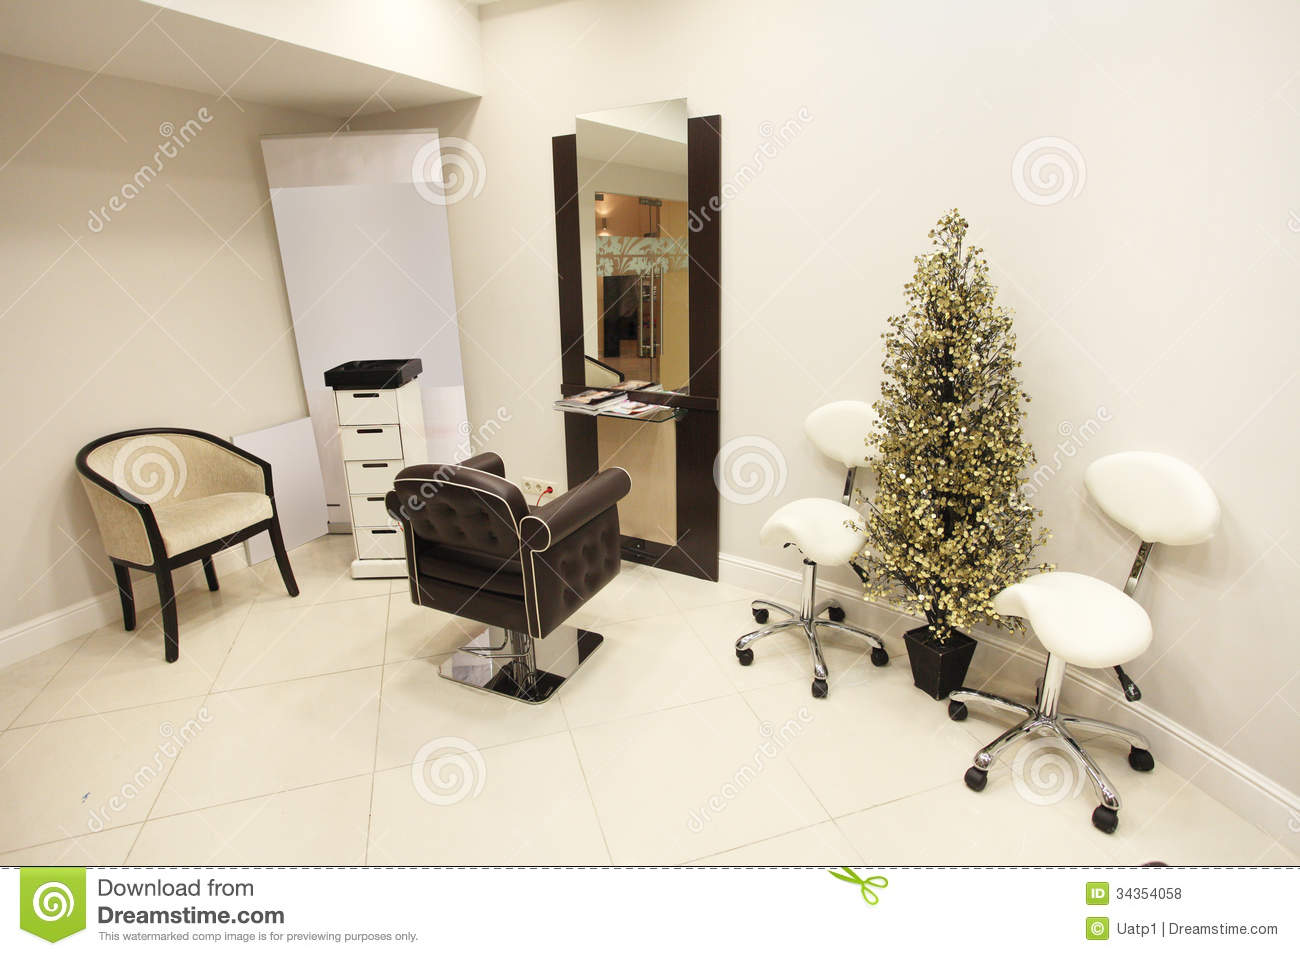 Beauty parlour royalty free stock photos image 34354058 for Interior designs for beauty parlour